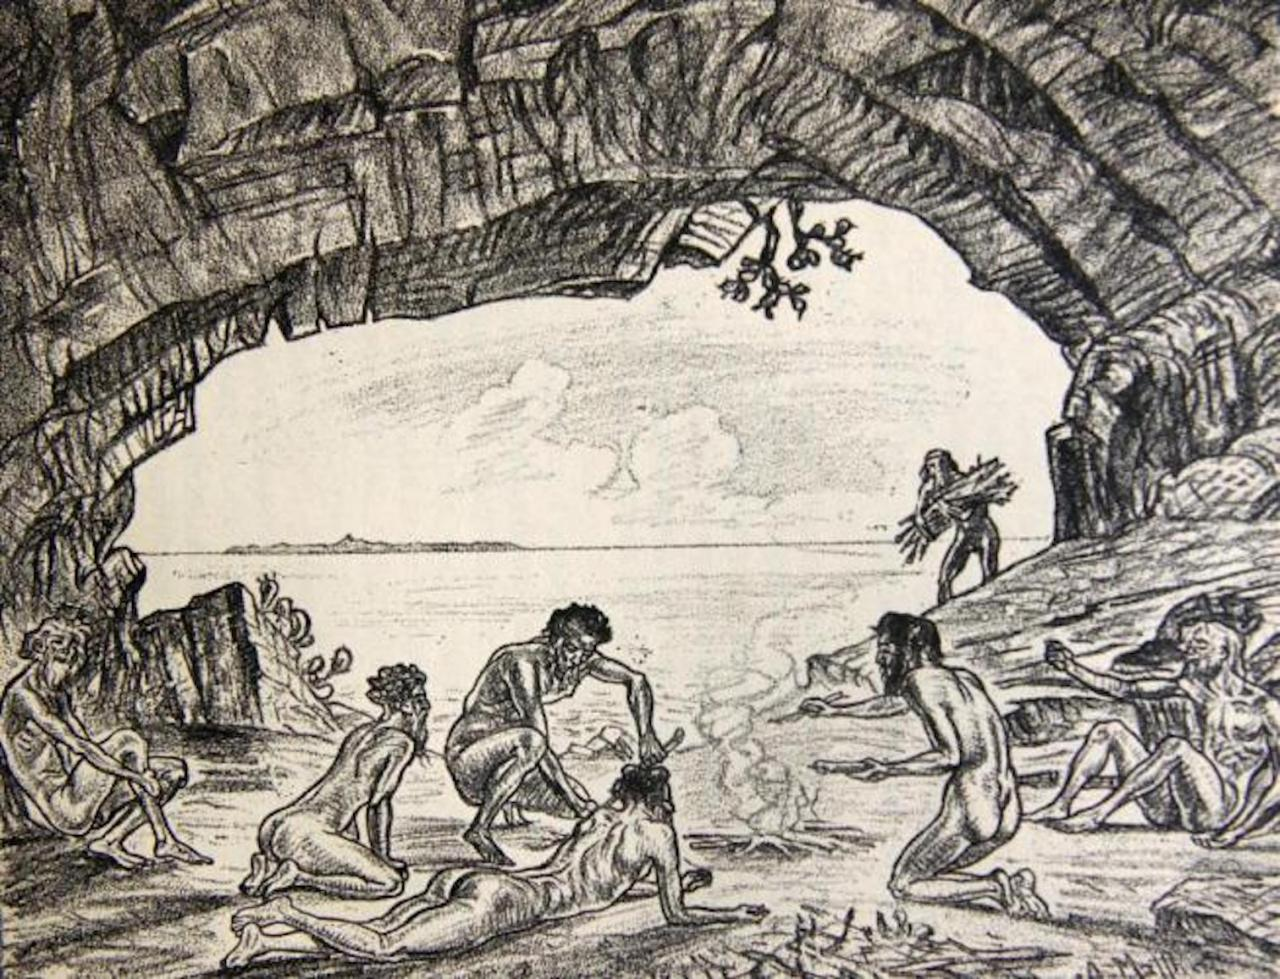 An engraving of the harsh conditions of prisoners on Cabrera.